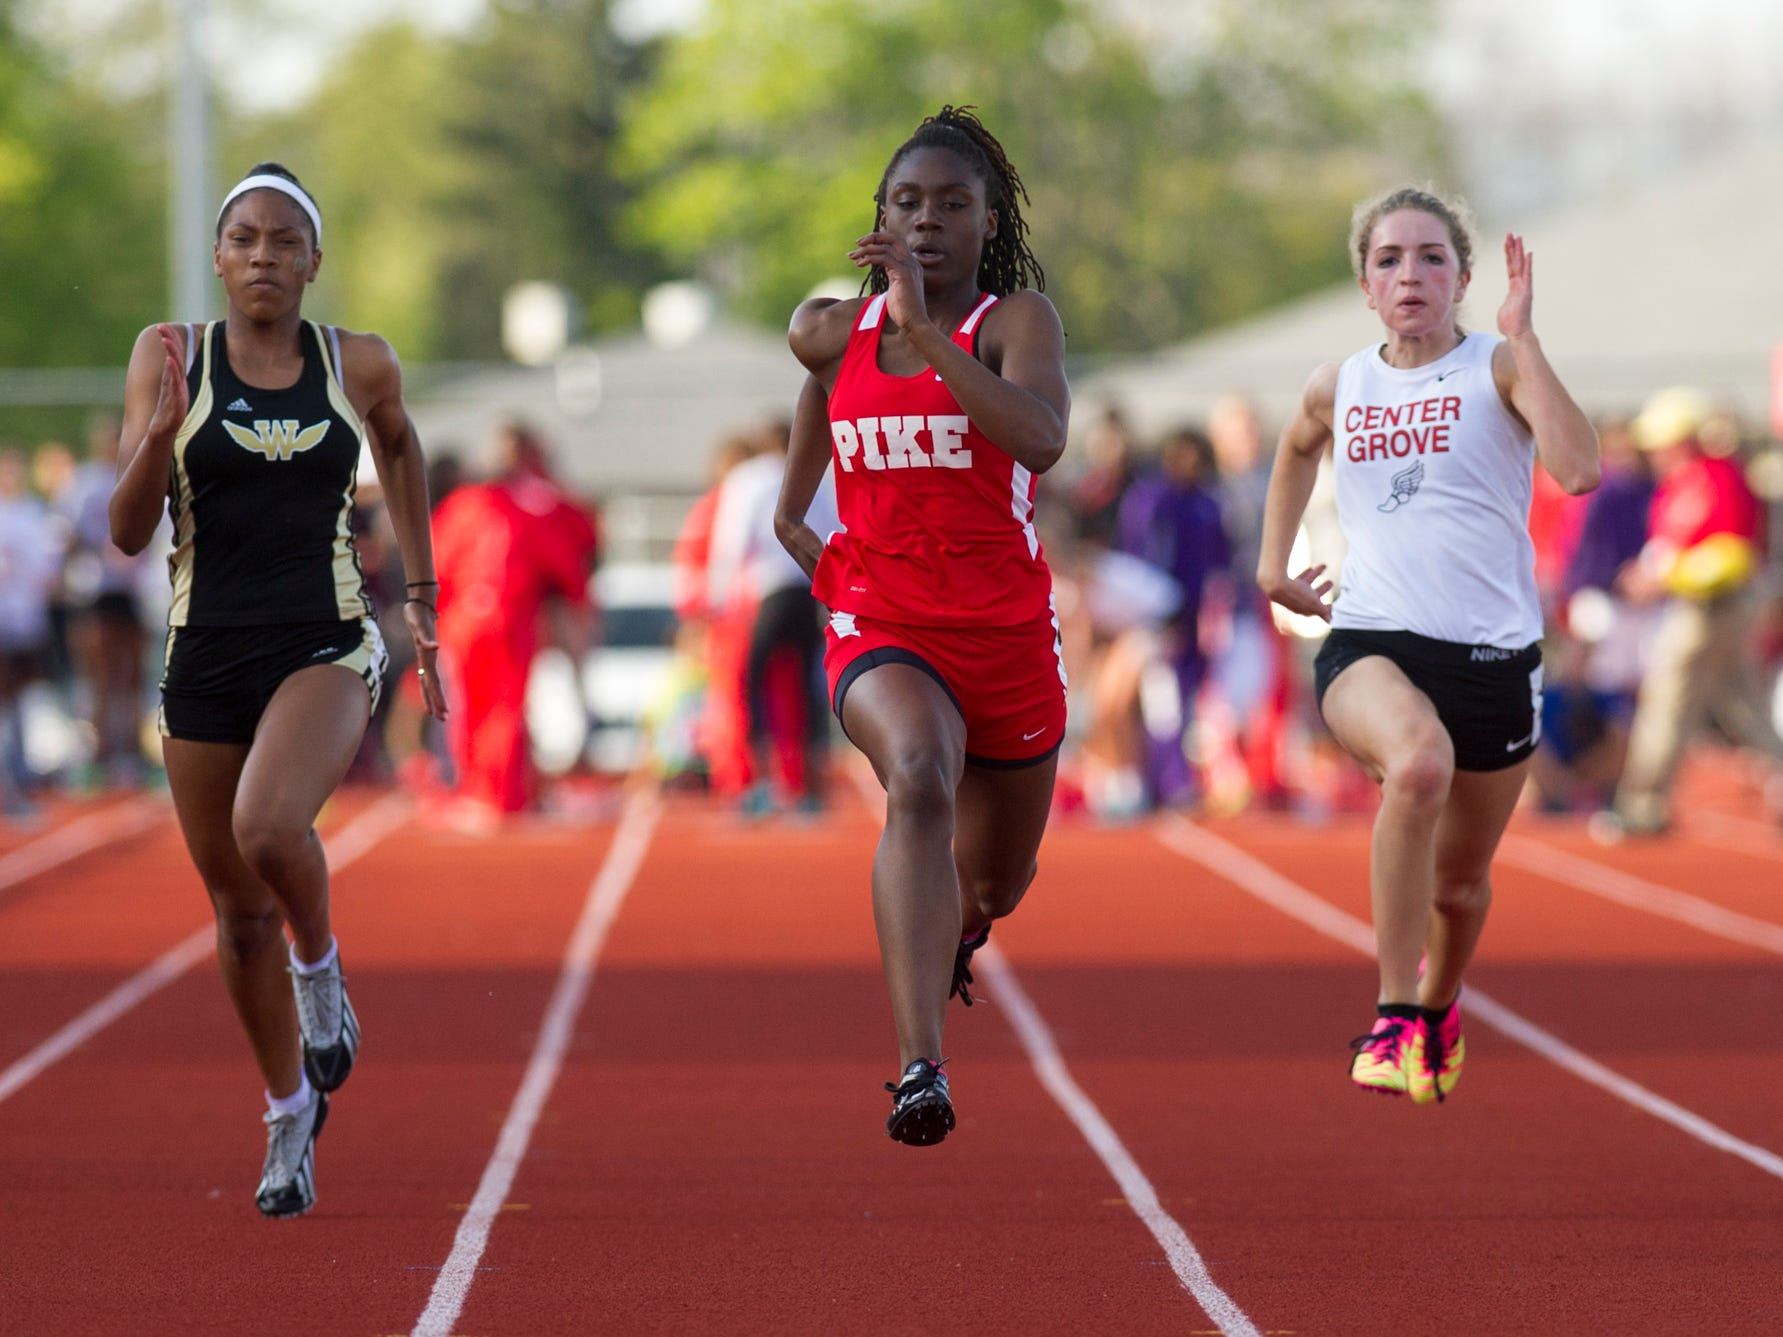 Pike High School senior Lynna Irby competes in the first heat of the 100 Meter Dash. Pike High School hosted the Metropolitan Interscholastic Conference (MIC) boys and girls track meet Friday, May 1, 2015.